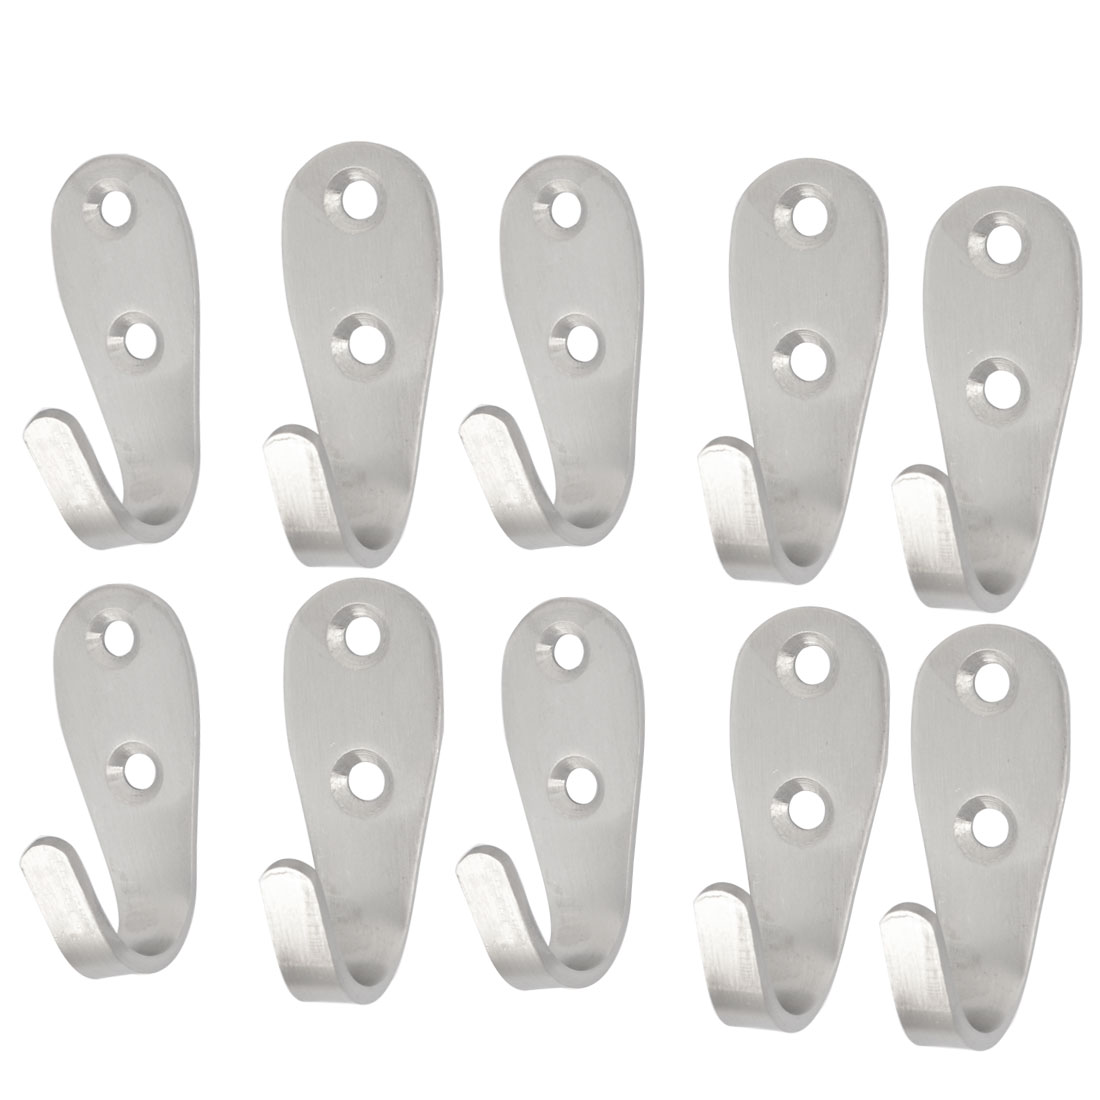 10Pcs Home Washroom Door Stainless Steel Fixed Towel Hanging Hook 2.1""